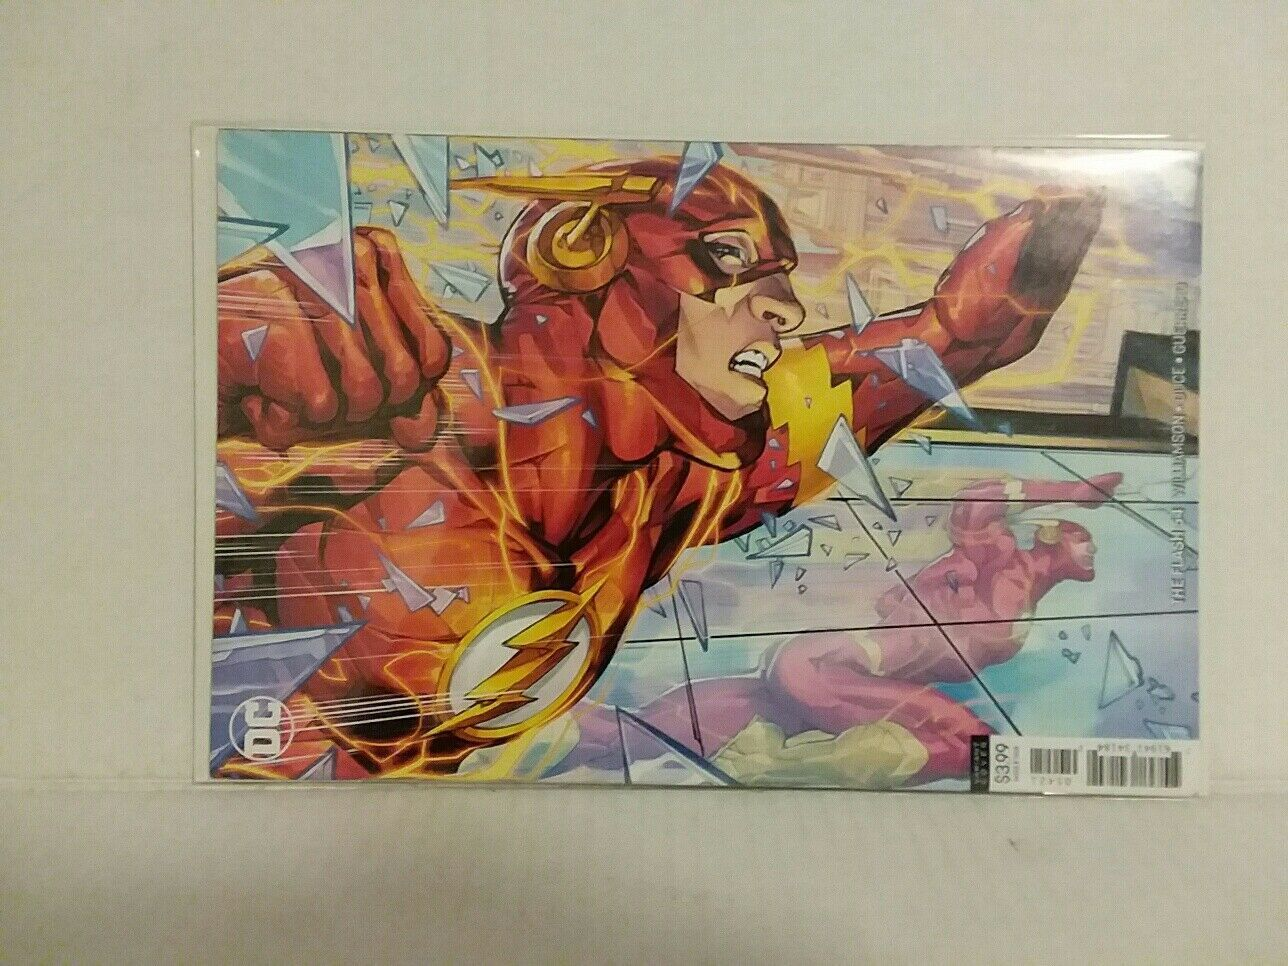 THE FLASH #51, 52 AND 54 + VARIANT #54 - FREE SHIPPING